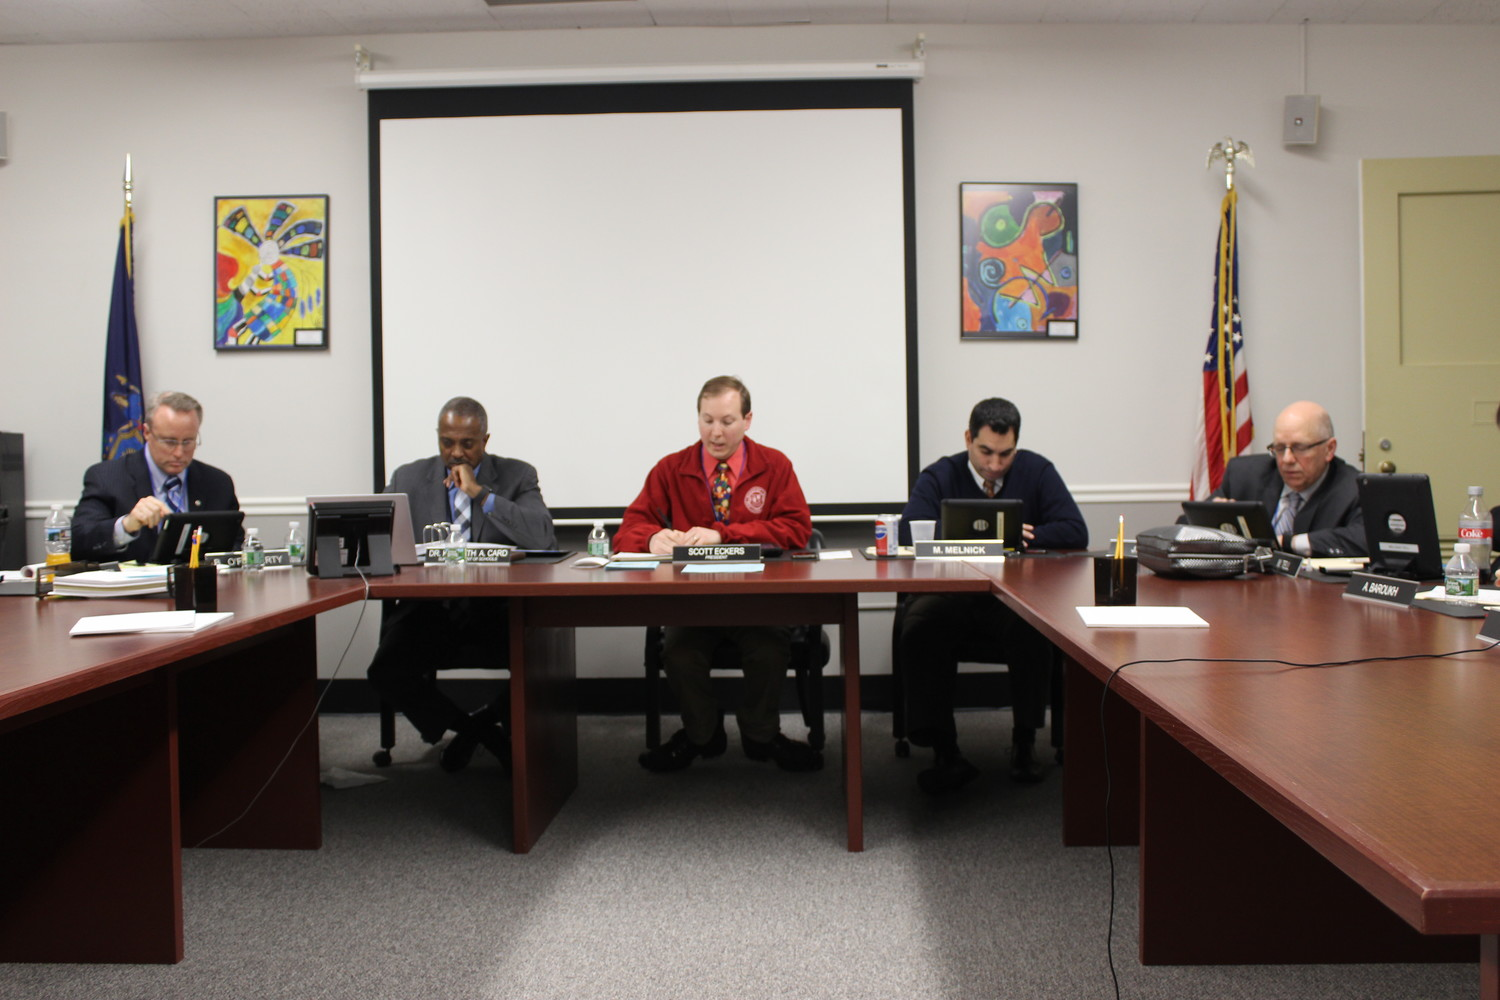 The East Meadow School District Board of Education recently outlined its 2018-19 budget, which would implement a number of improvements to security, staffing and students services.